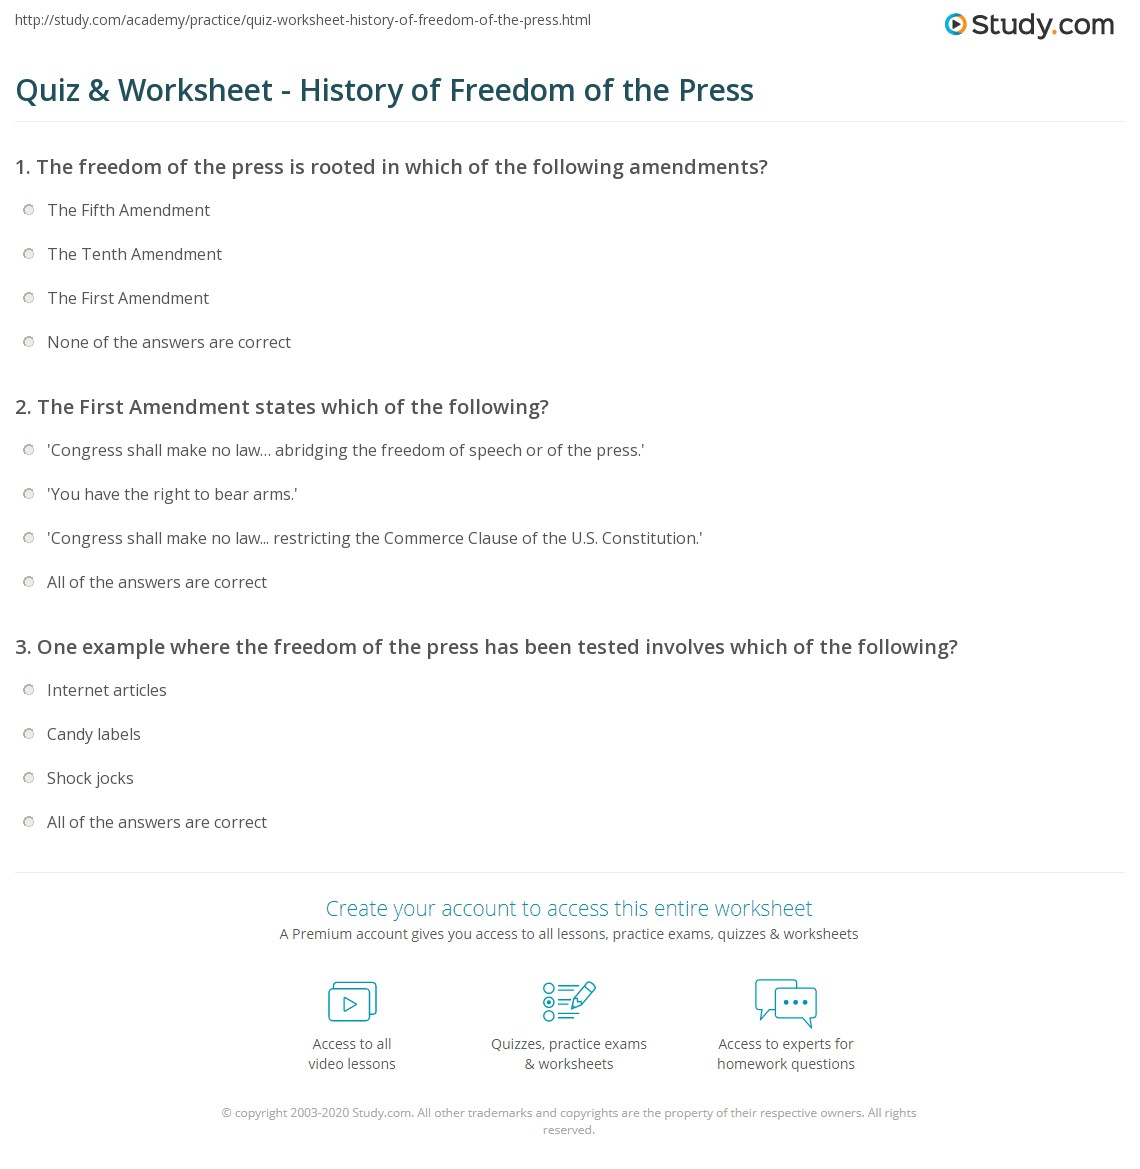 quiz worksheet history of freedom of the press. Black Bedroom Furniture Sets. Home Design Ideas